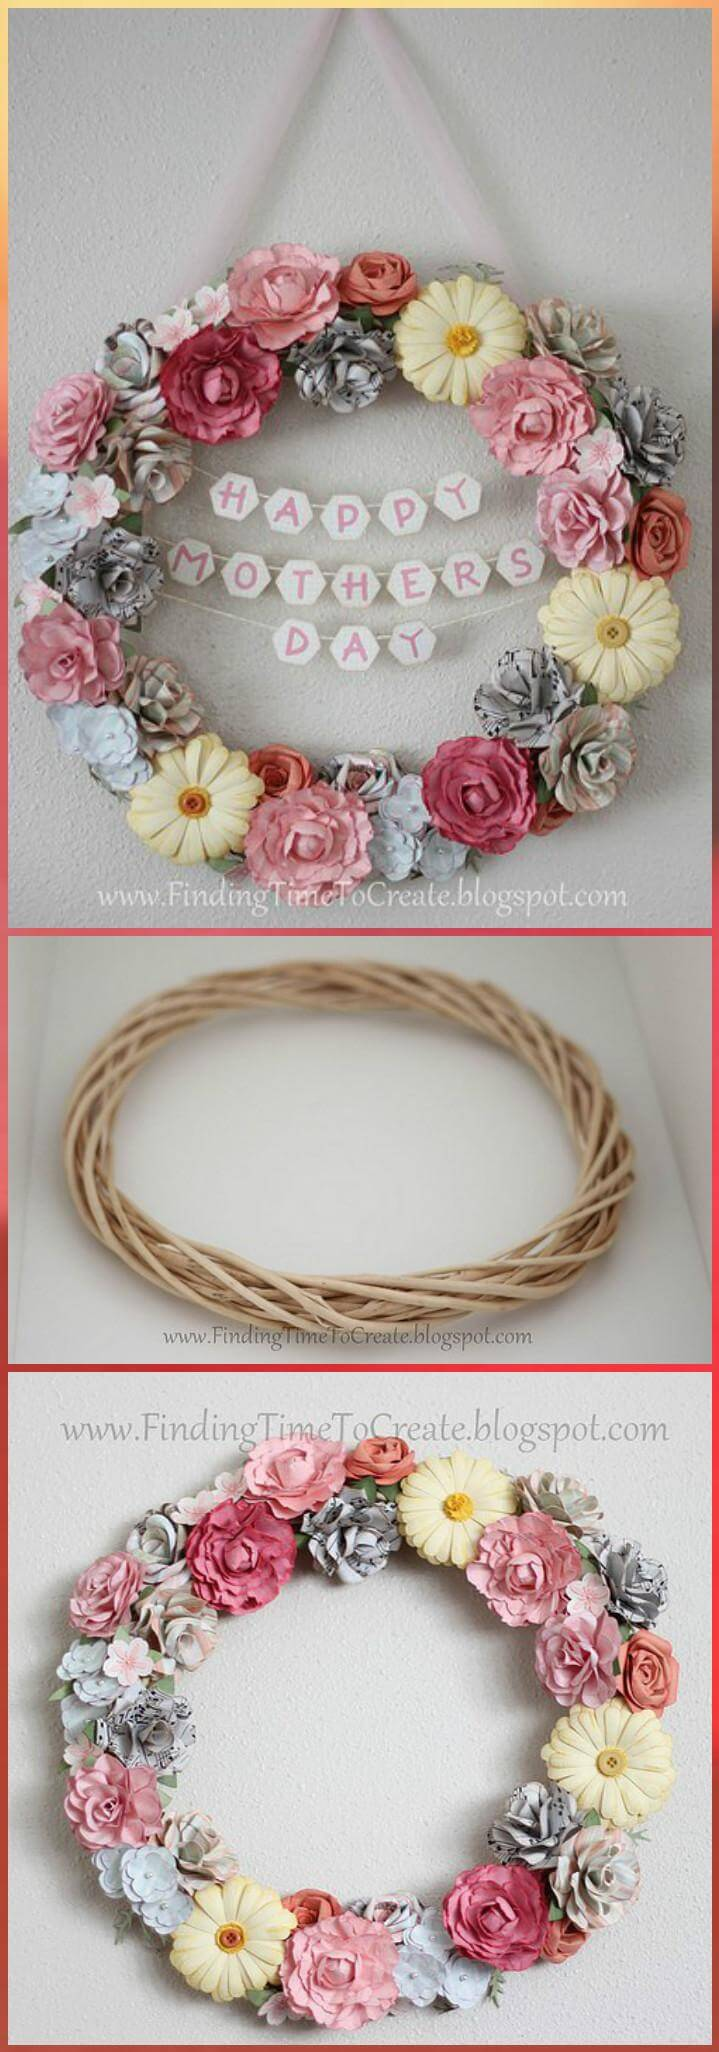 handmade flower wreath Mother's Day gift idea